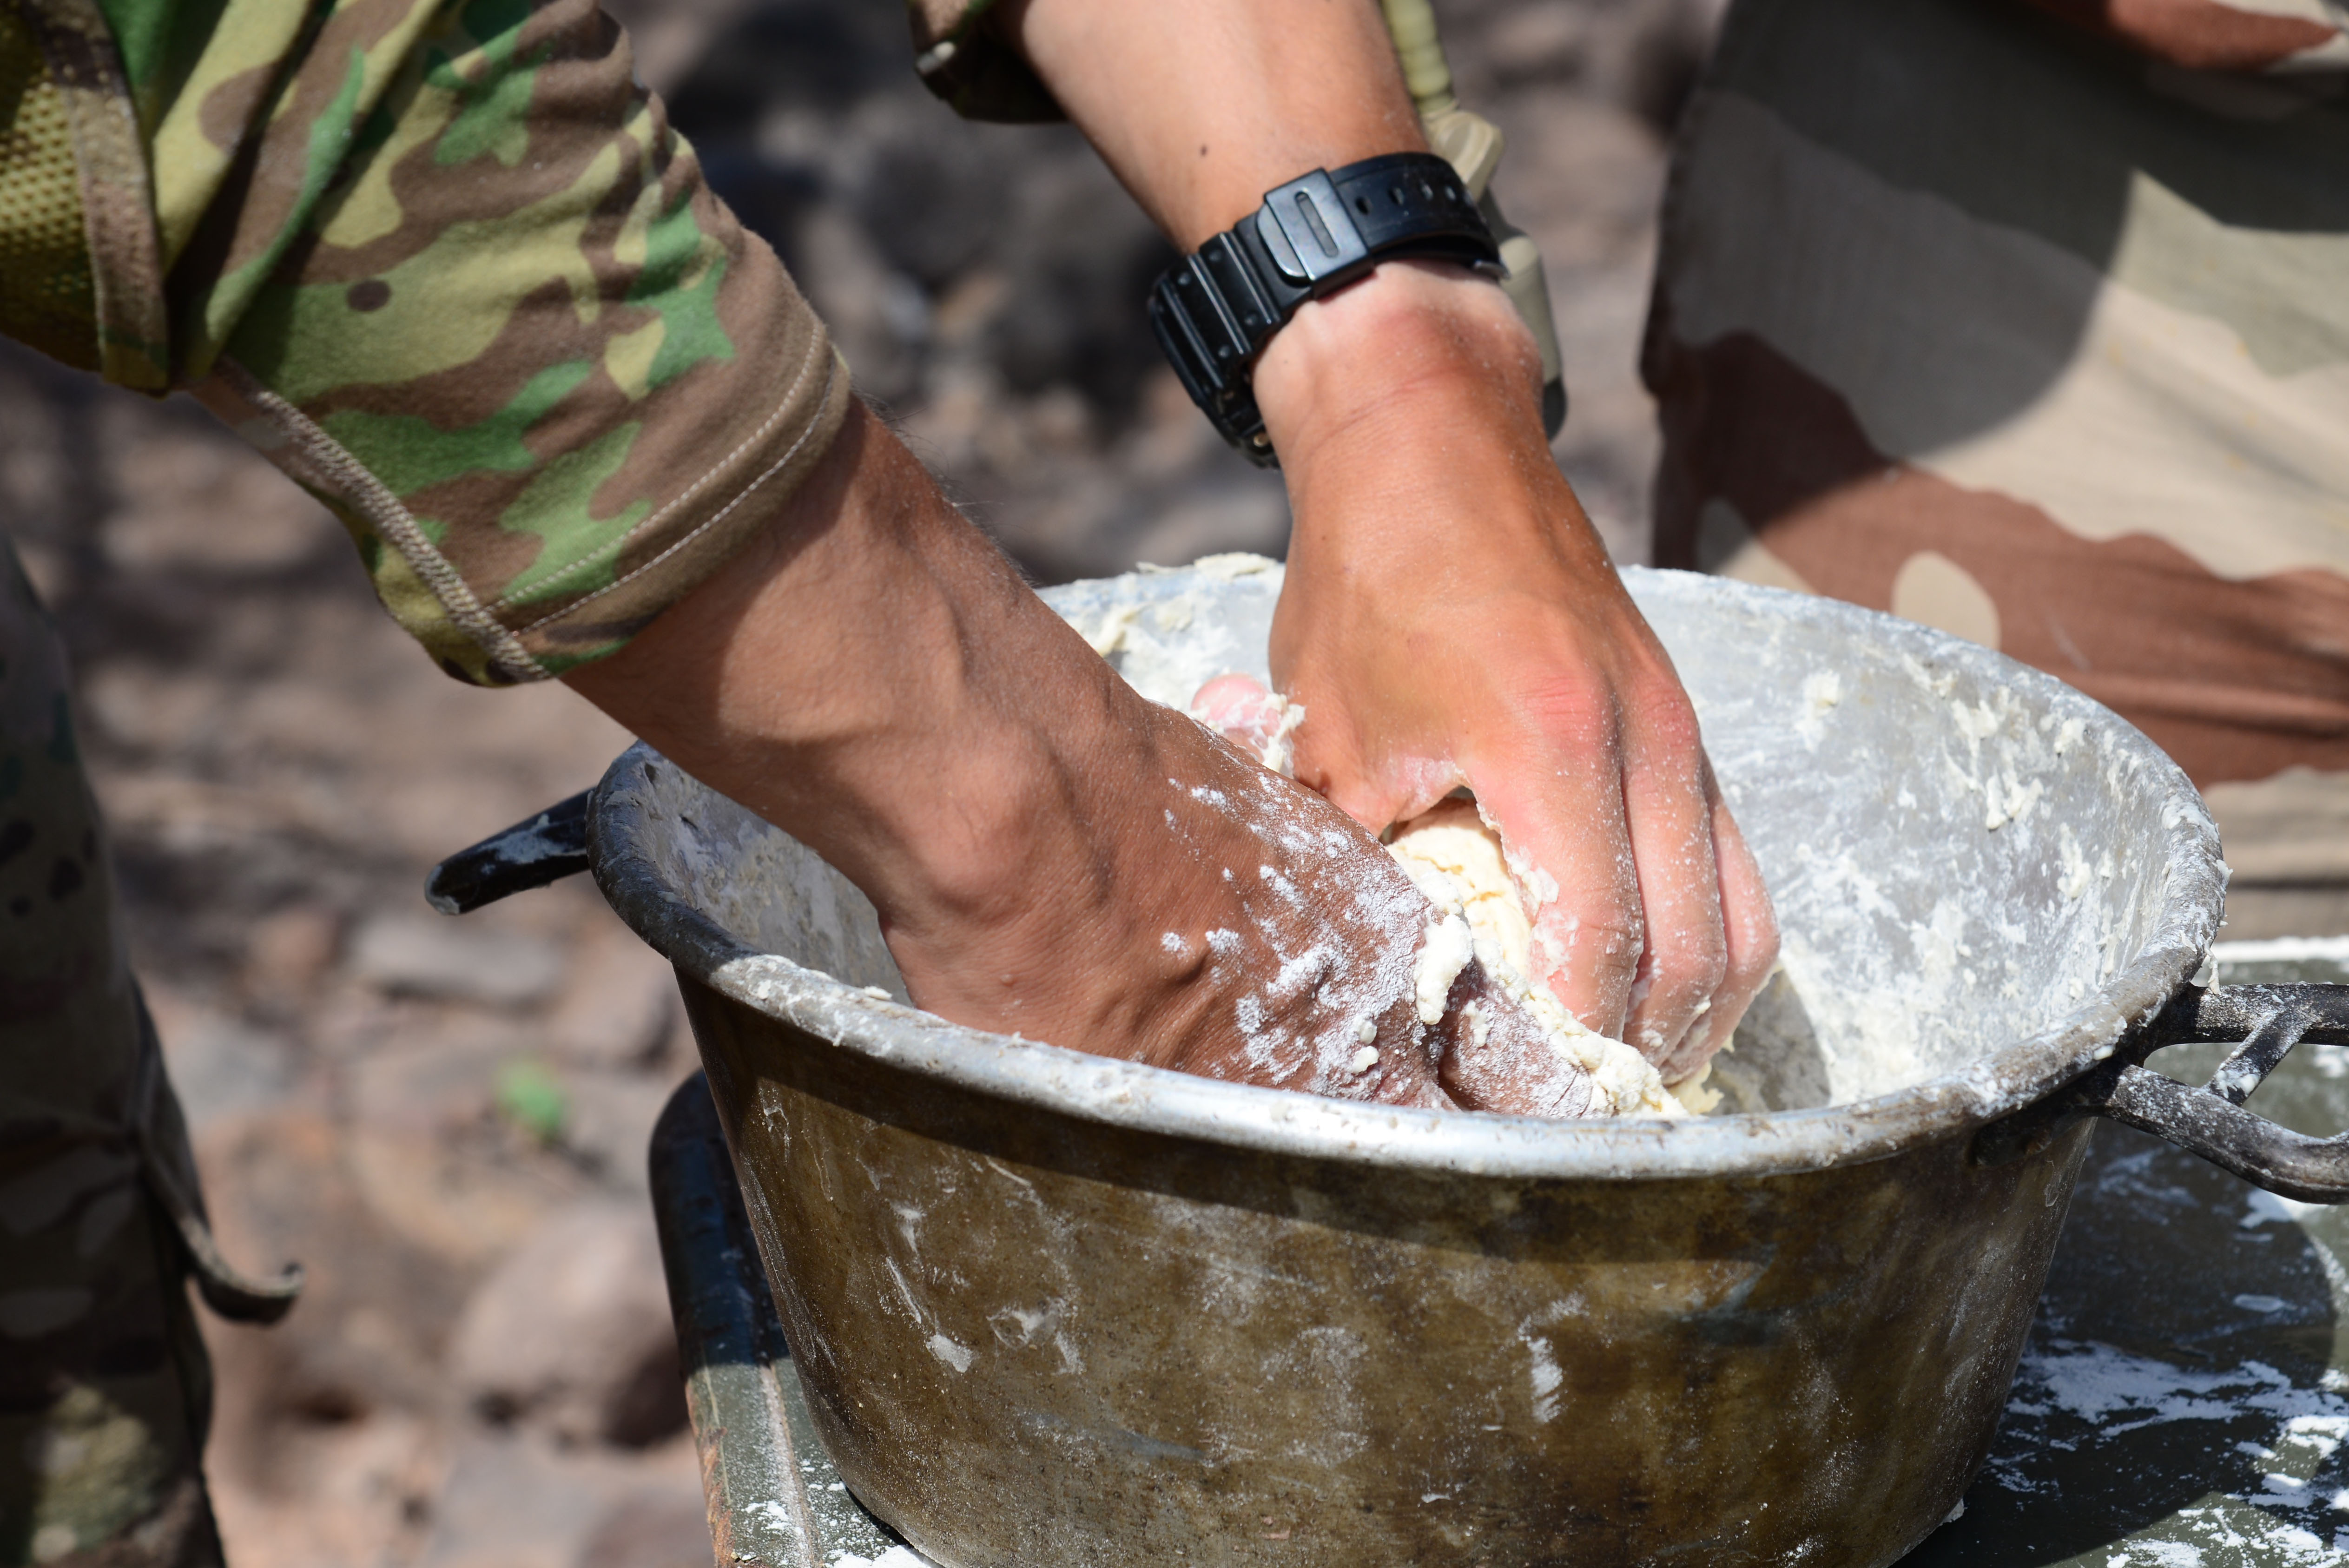 U.S. Army 1st Lt. Anthony Barnett, 2nd Battalion, 124th Infantry Regiment, kneads dough to make bread during the French Desert Survival Course, May 5, 2016, at Arta Plage, Djibouti. During the course, U.S. forces also learned how to prepare tea and meat in austere environments. (U.S. Air Force photo by Senior Airman Benjamin Raughton/Released)